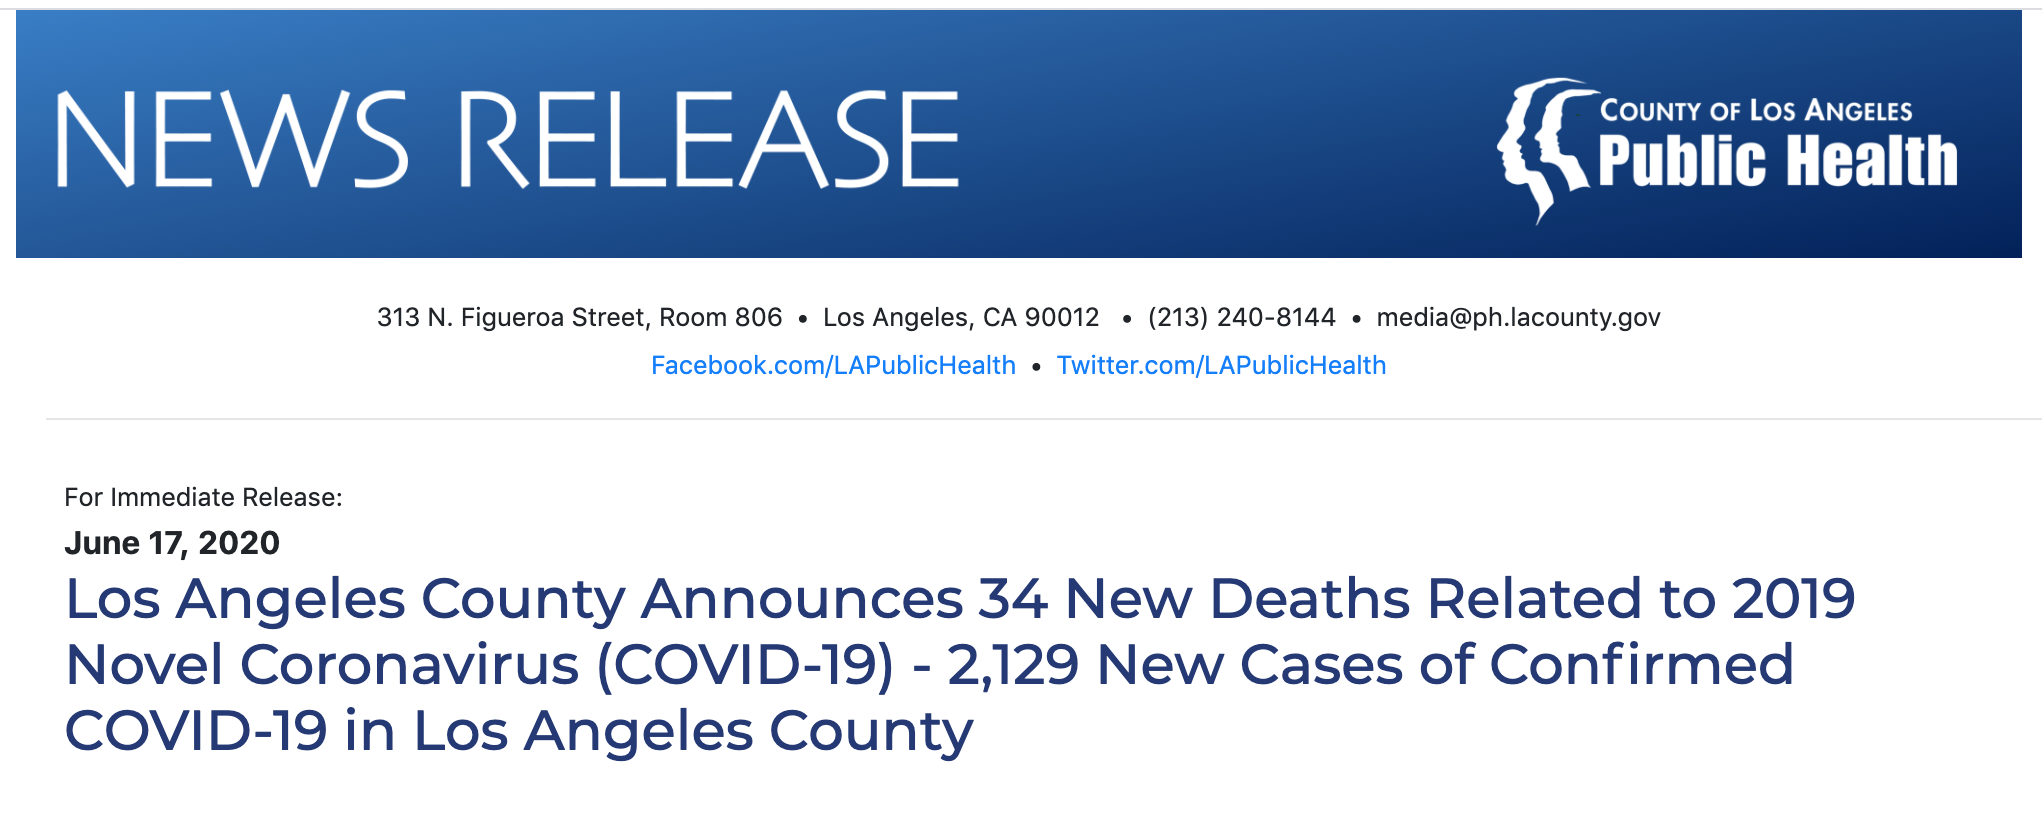 Los Angeles County Announces 34 New Deaths Related to 2019 Novel Coronavirus (COVID-19) 2,129 New Cases